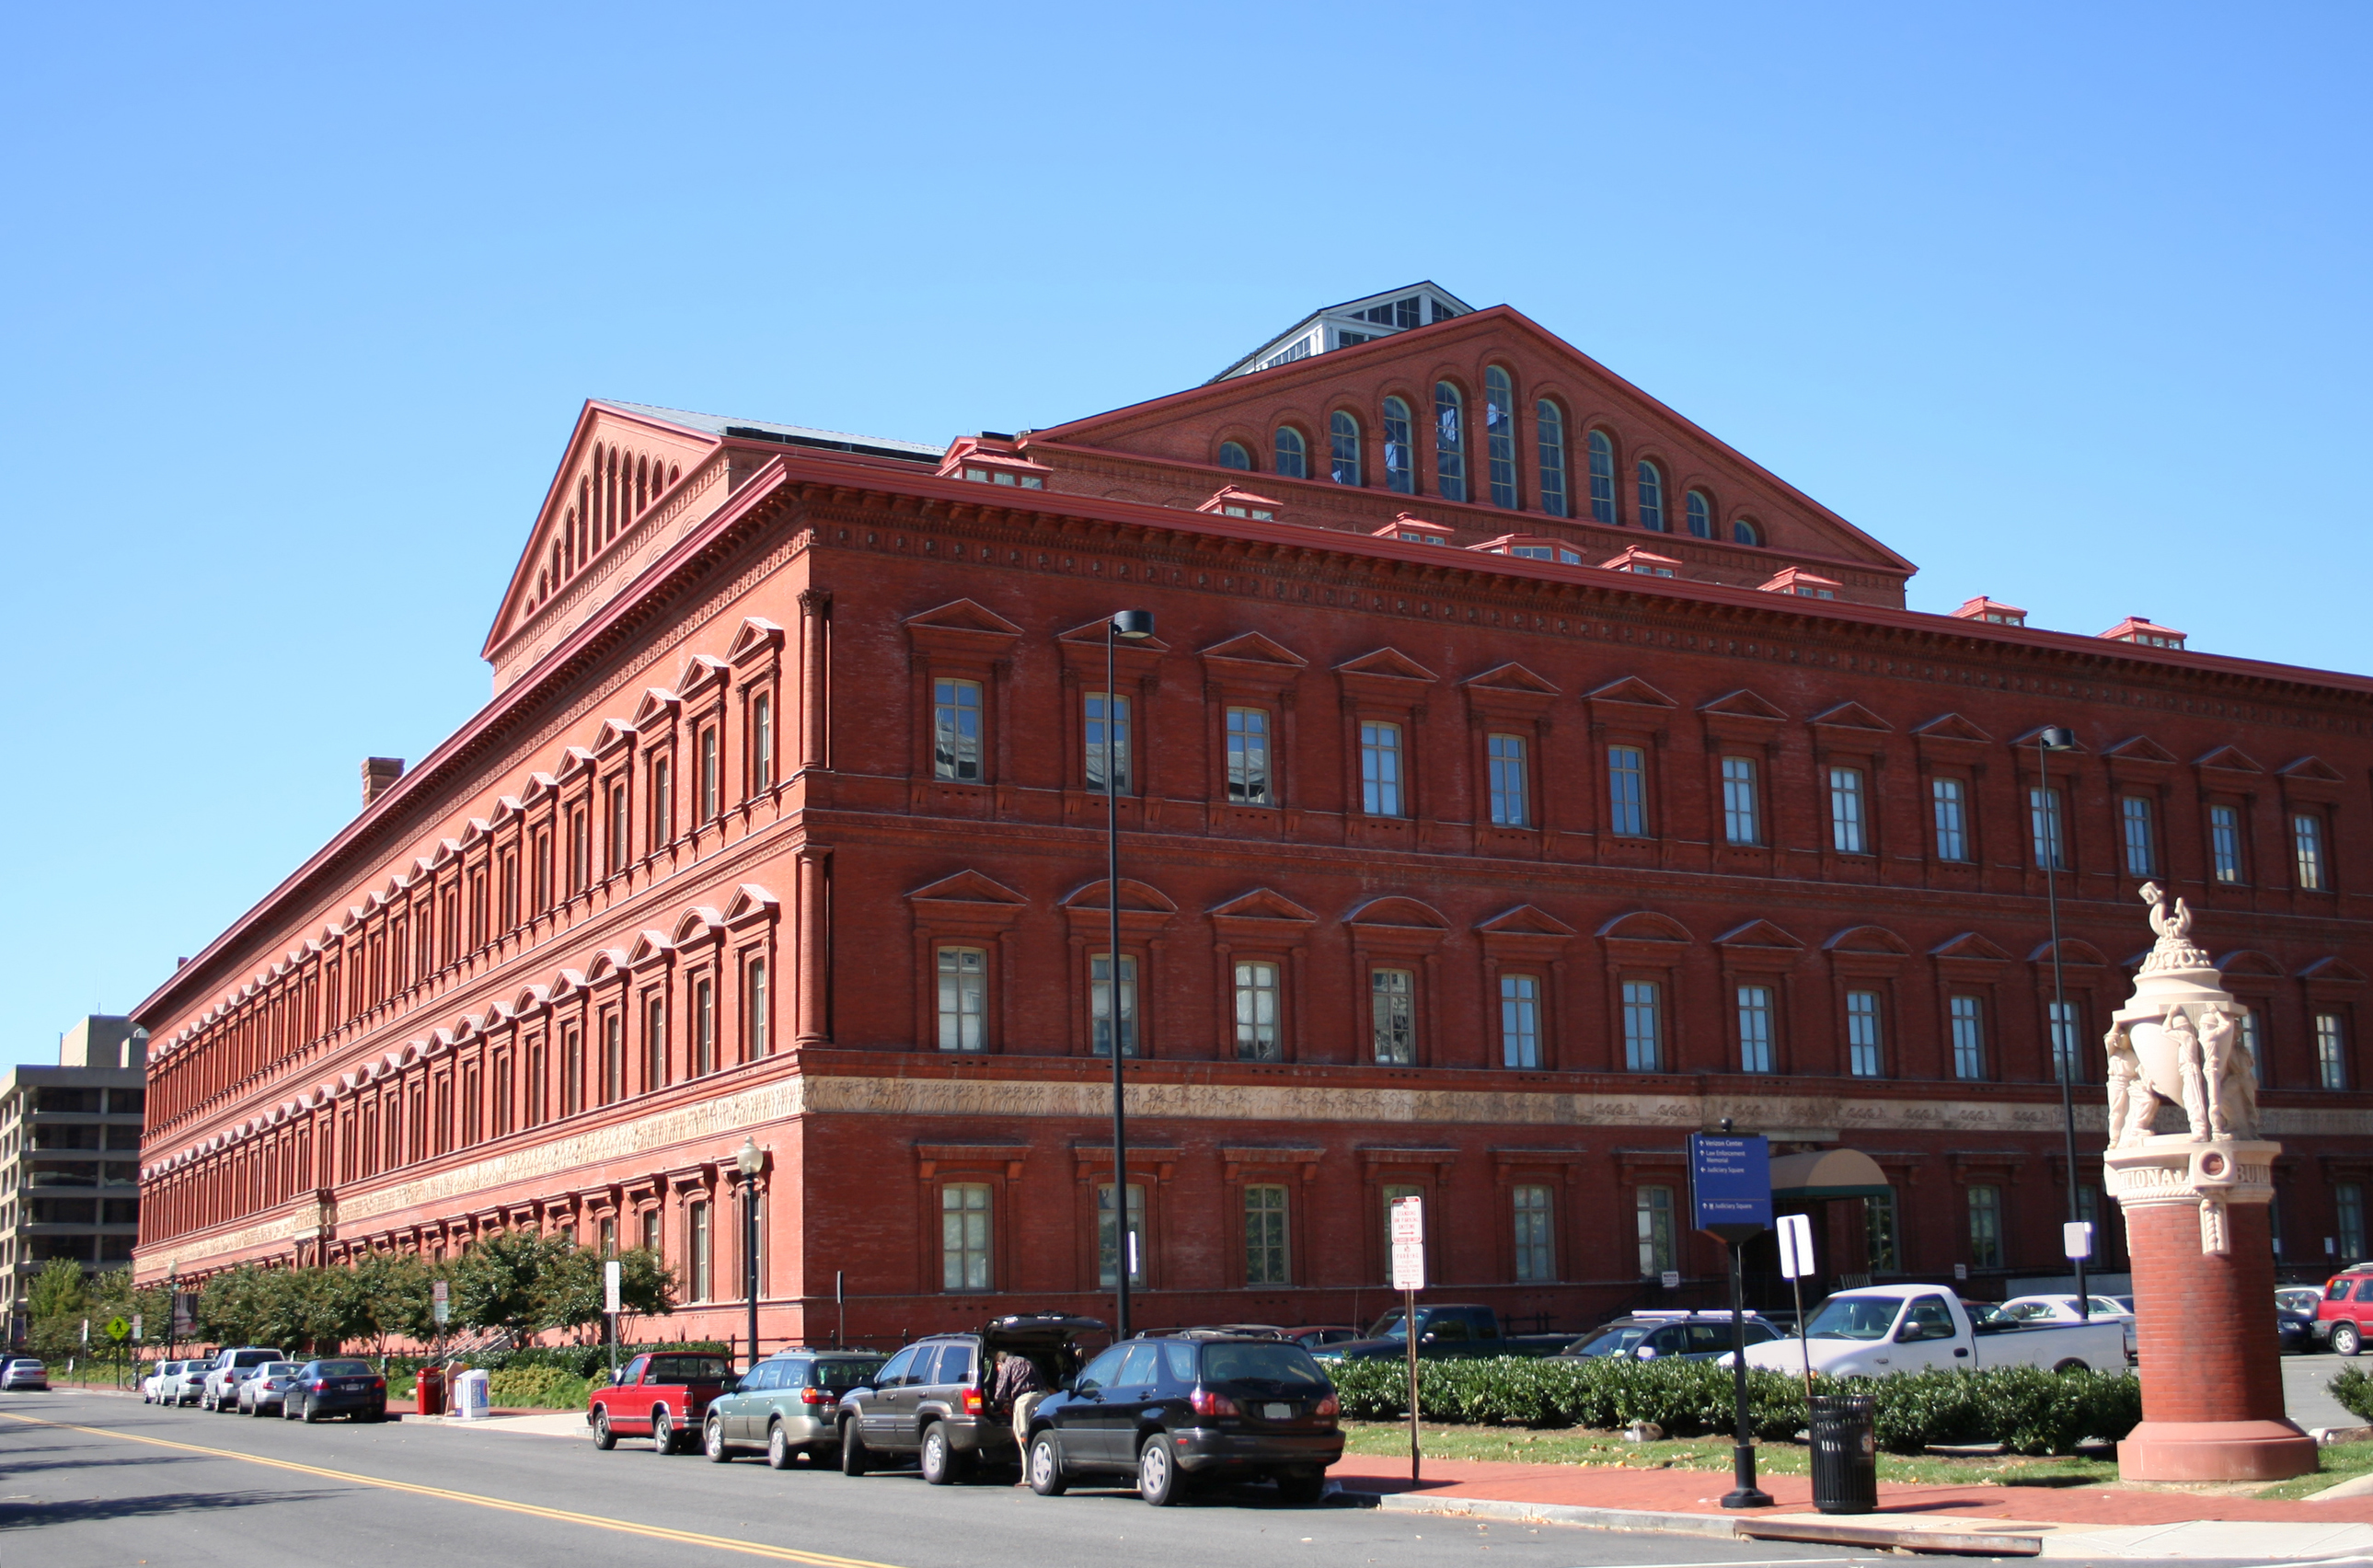 The National Building Museum, a three-and-a-half story Renaissance Revival-style building in Penn Quarter.